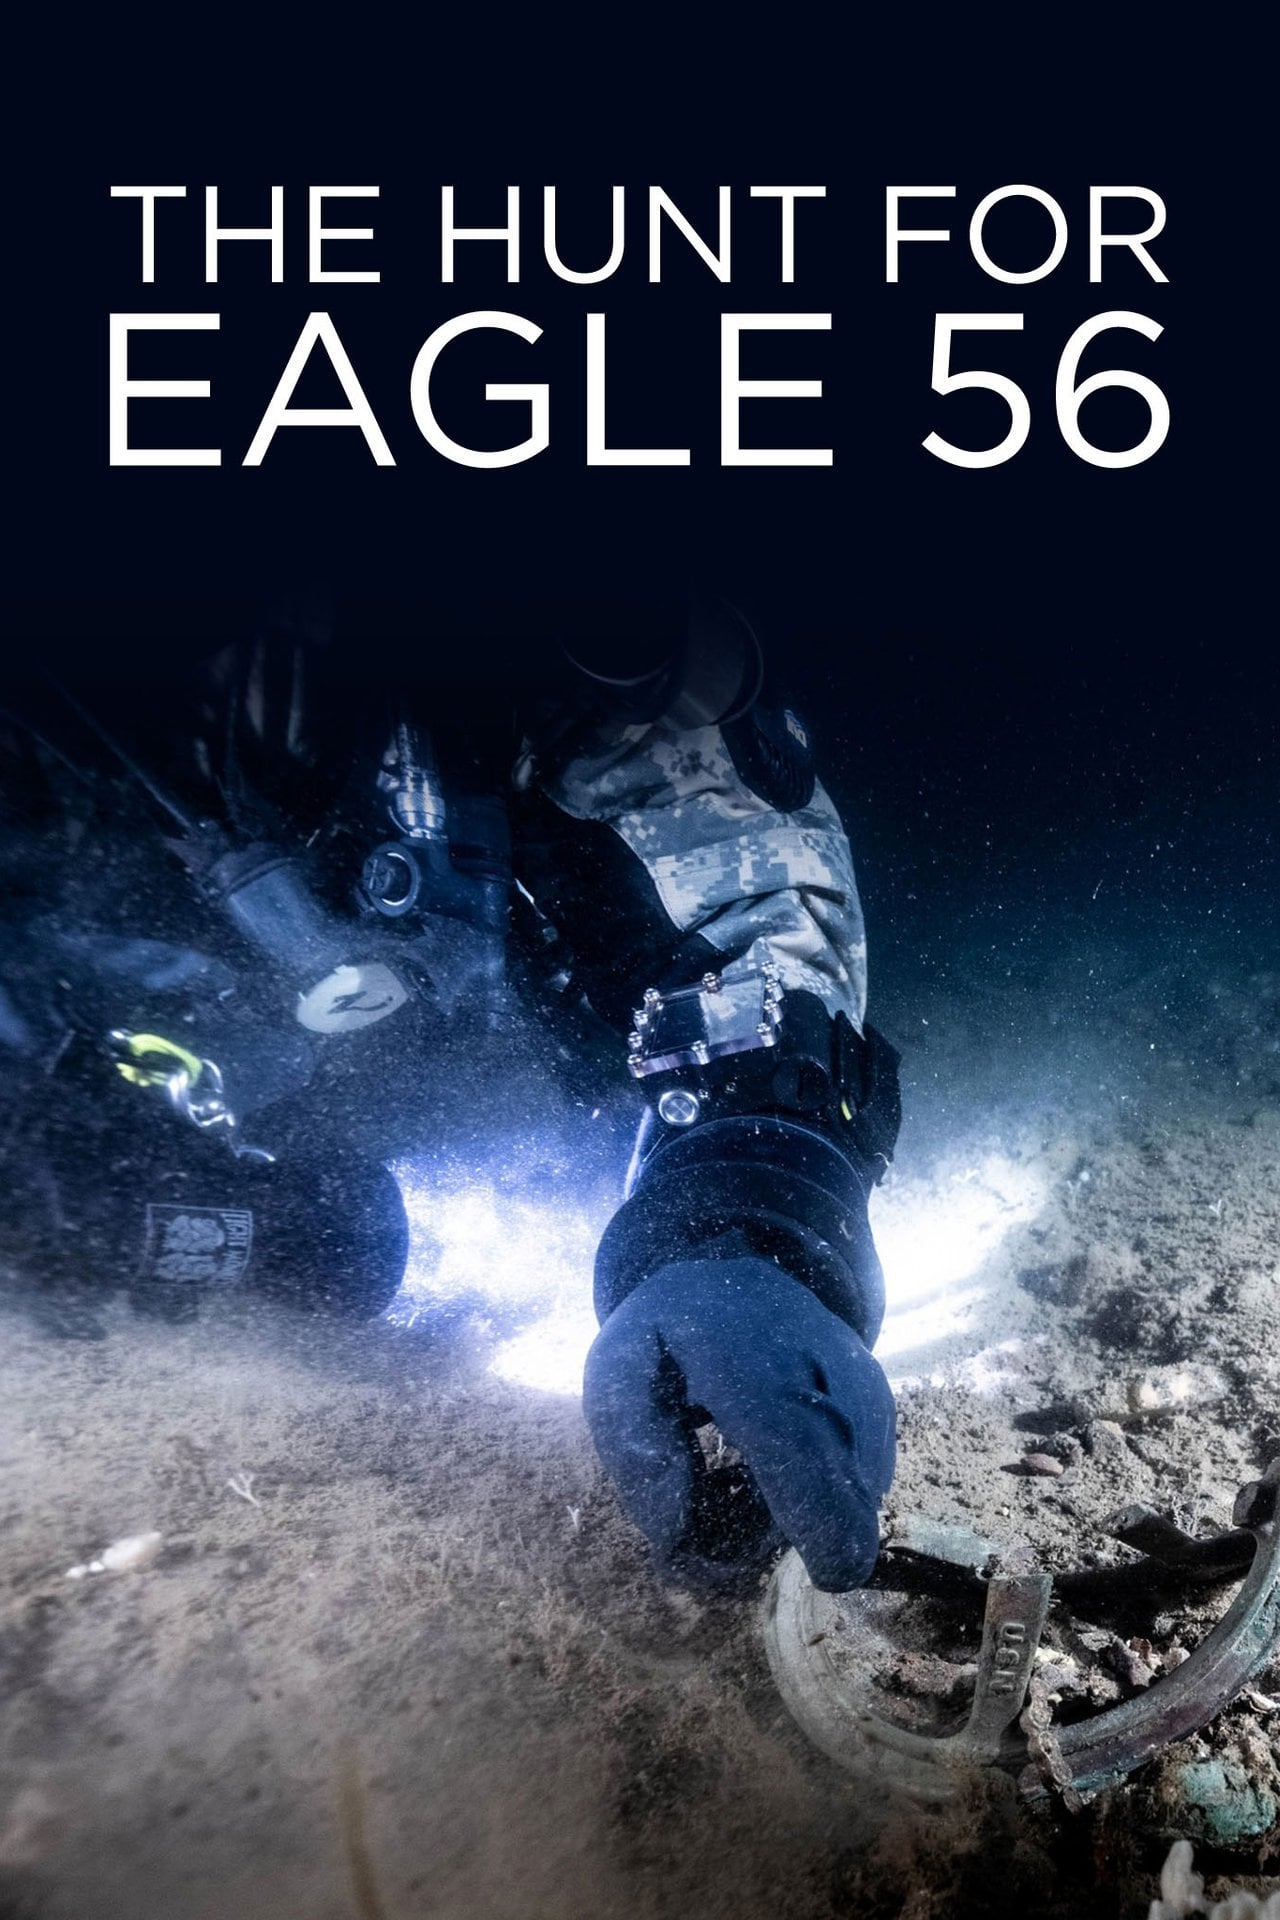 The Hunt for Eagle 56 (2019)